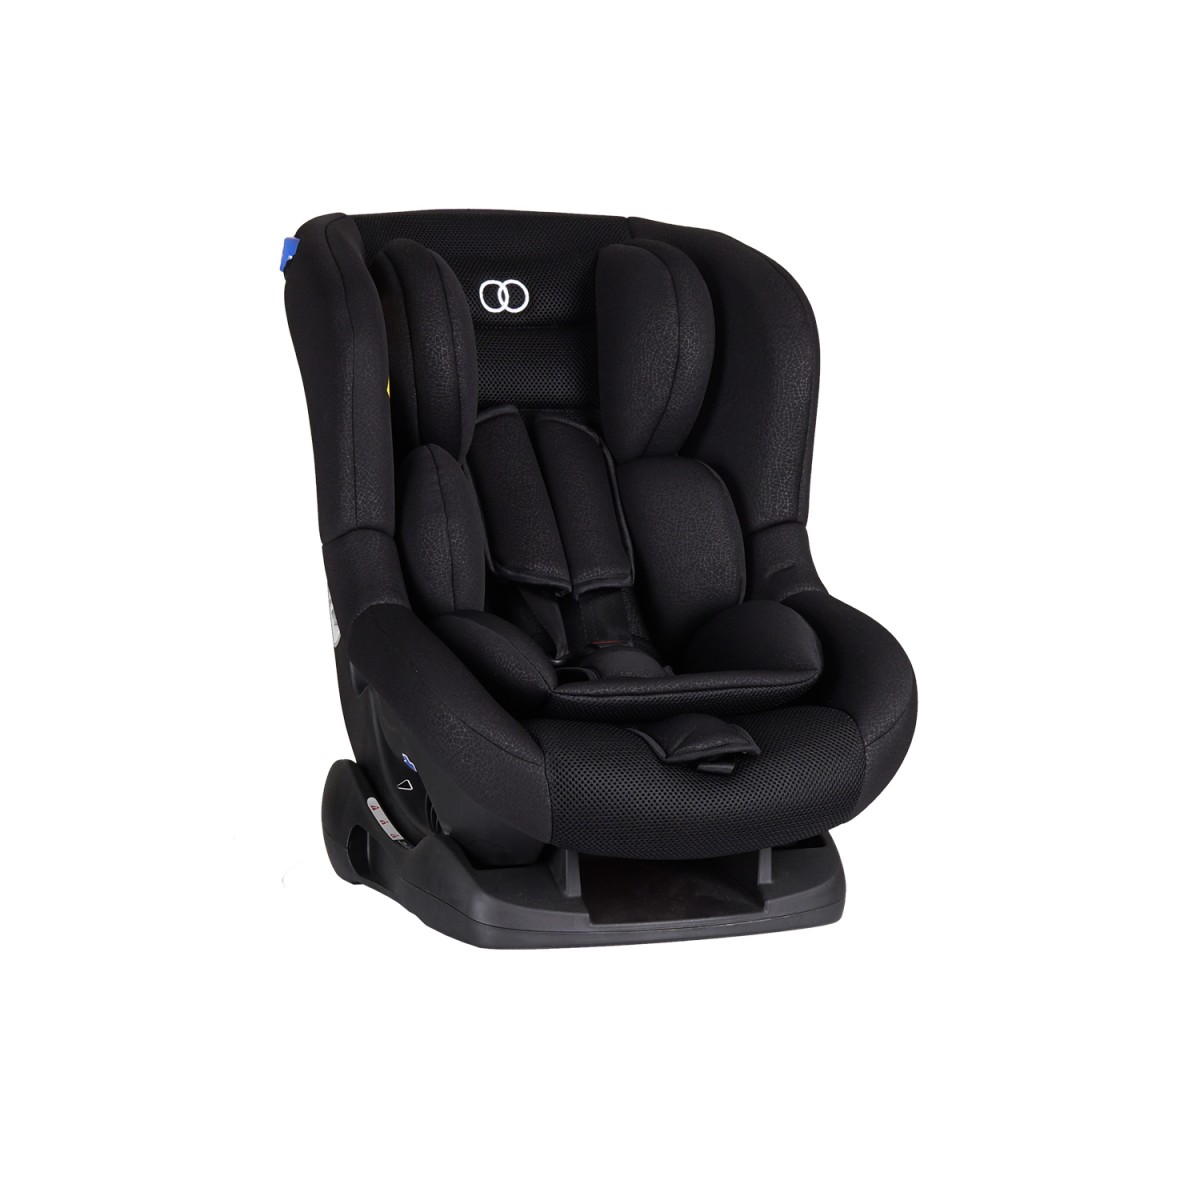 Koopers Pago Convertible Car Seat - Baby Care Malaysia